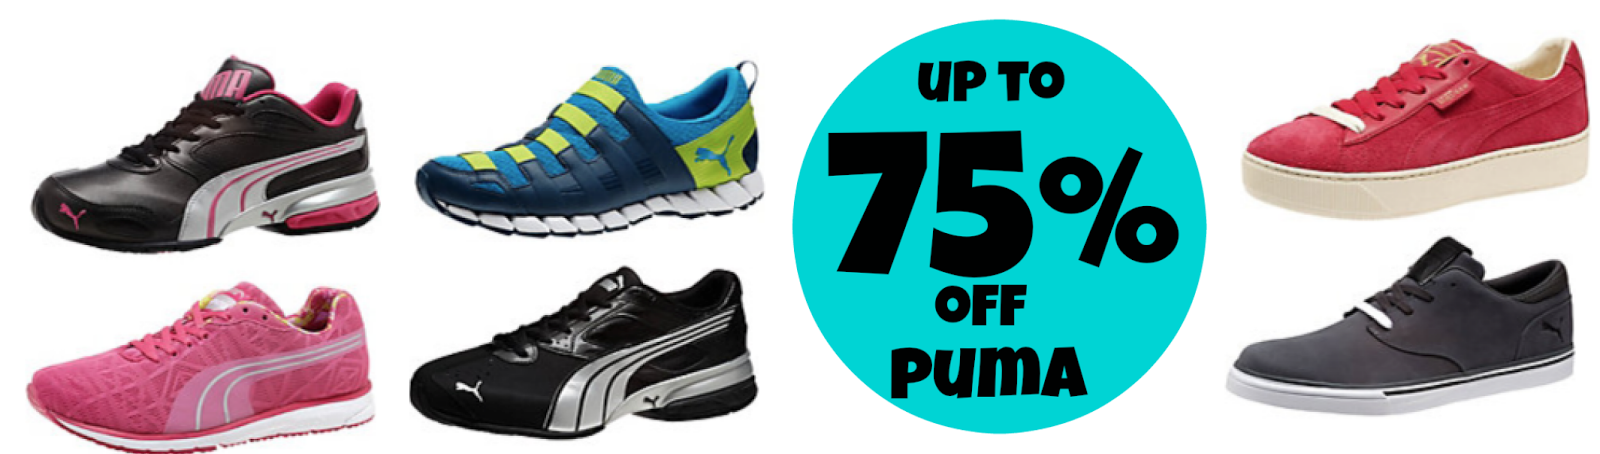 http://www.thebinderladies.com/2015/02/puma-private-sale-up-to-75-off-shoes.html#.VNOzfYfduyM